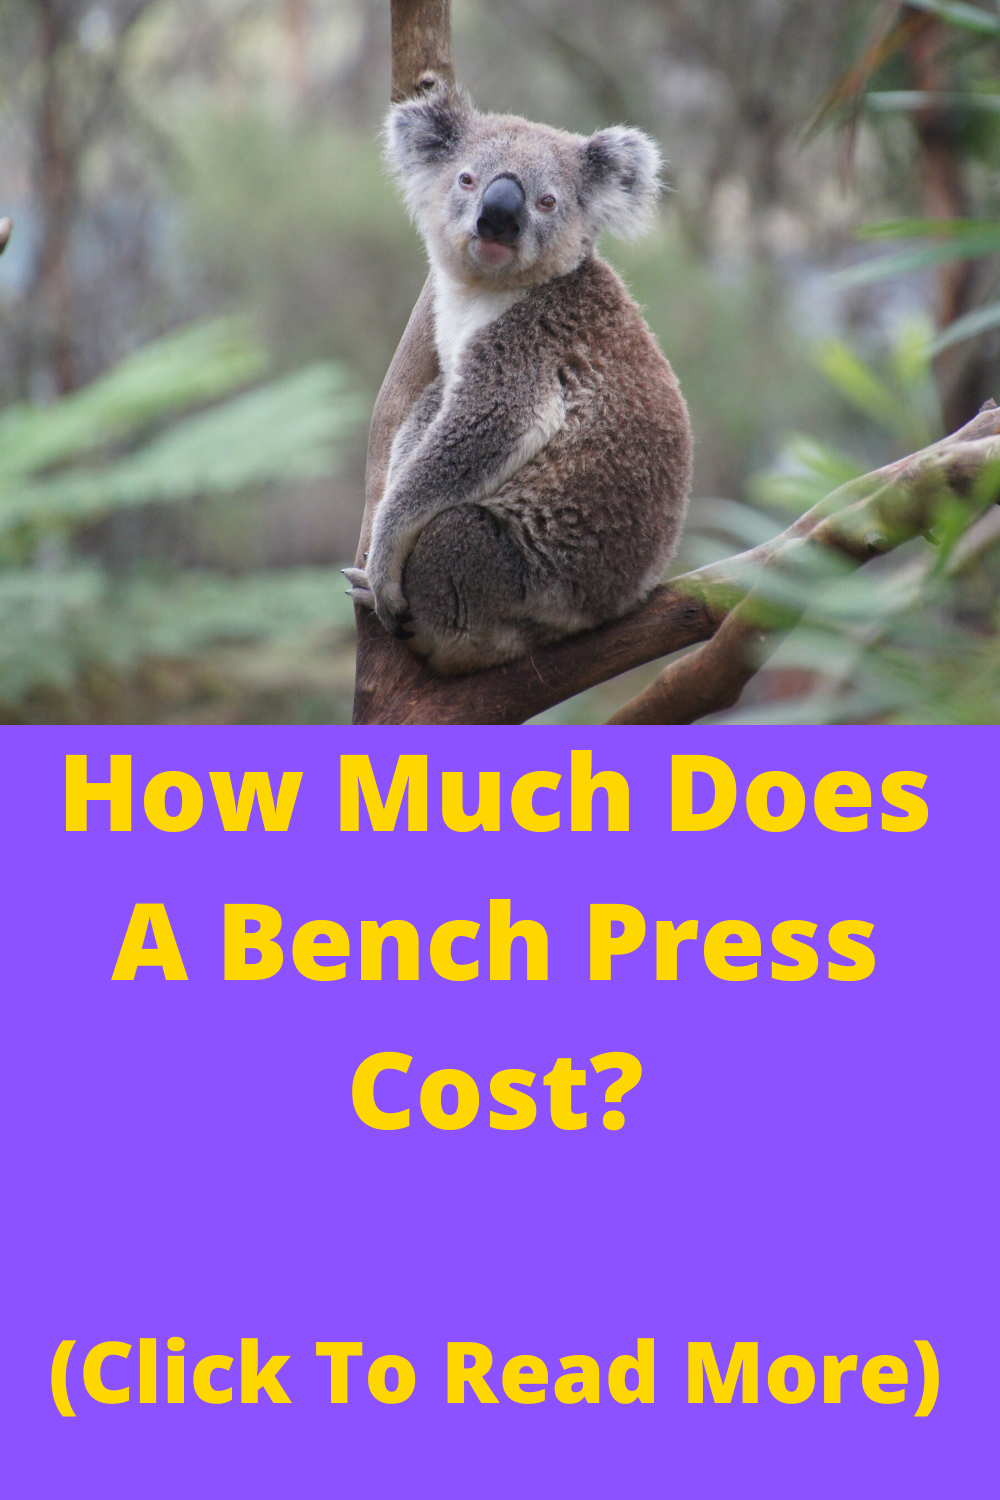 Bench Press Cost In 2020 Bench Press Weight Set Indoor Gym